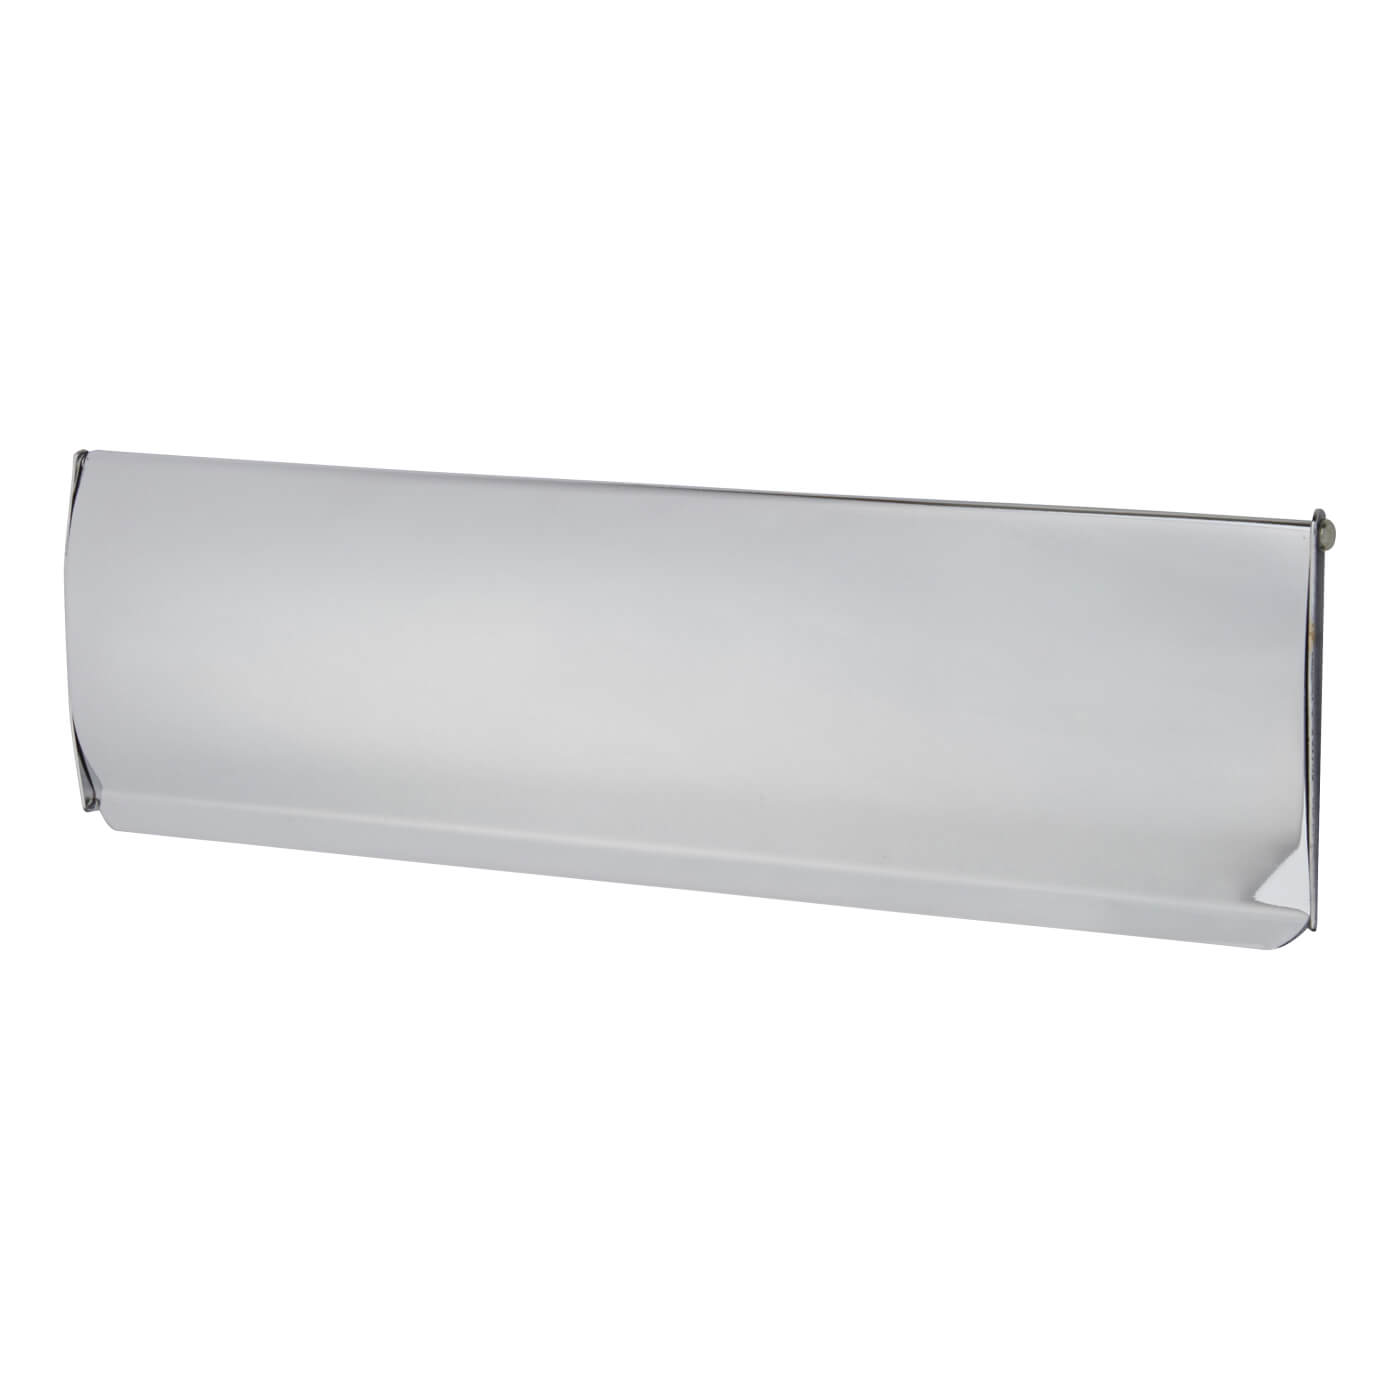 M Marcus Interior Letter Tidy - 304 x 93.4mm - Polished Chrome)